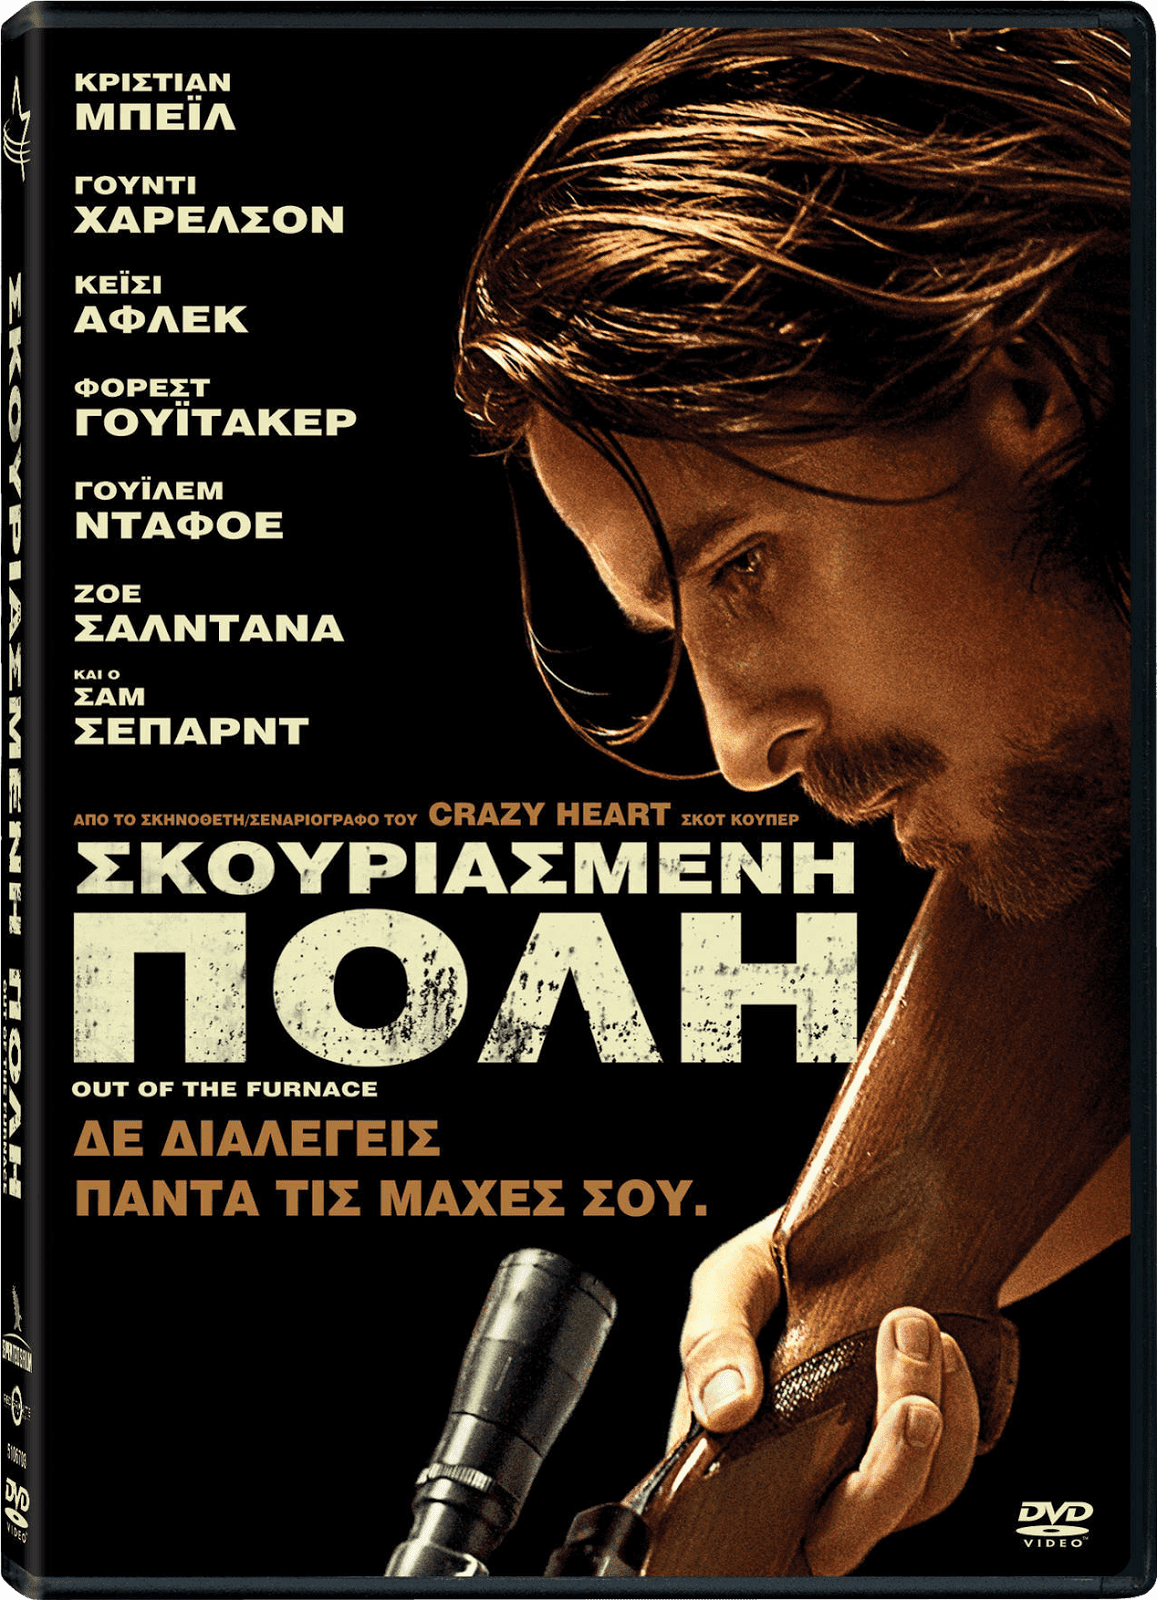 Out Of The Furnace - Σκουριασμένη Πόλη (2013) ταινιες online seires xrysoi greek subs